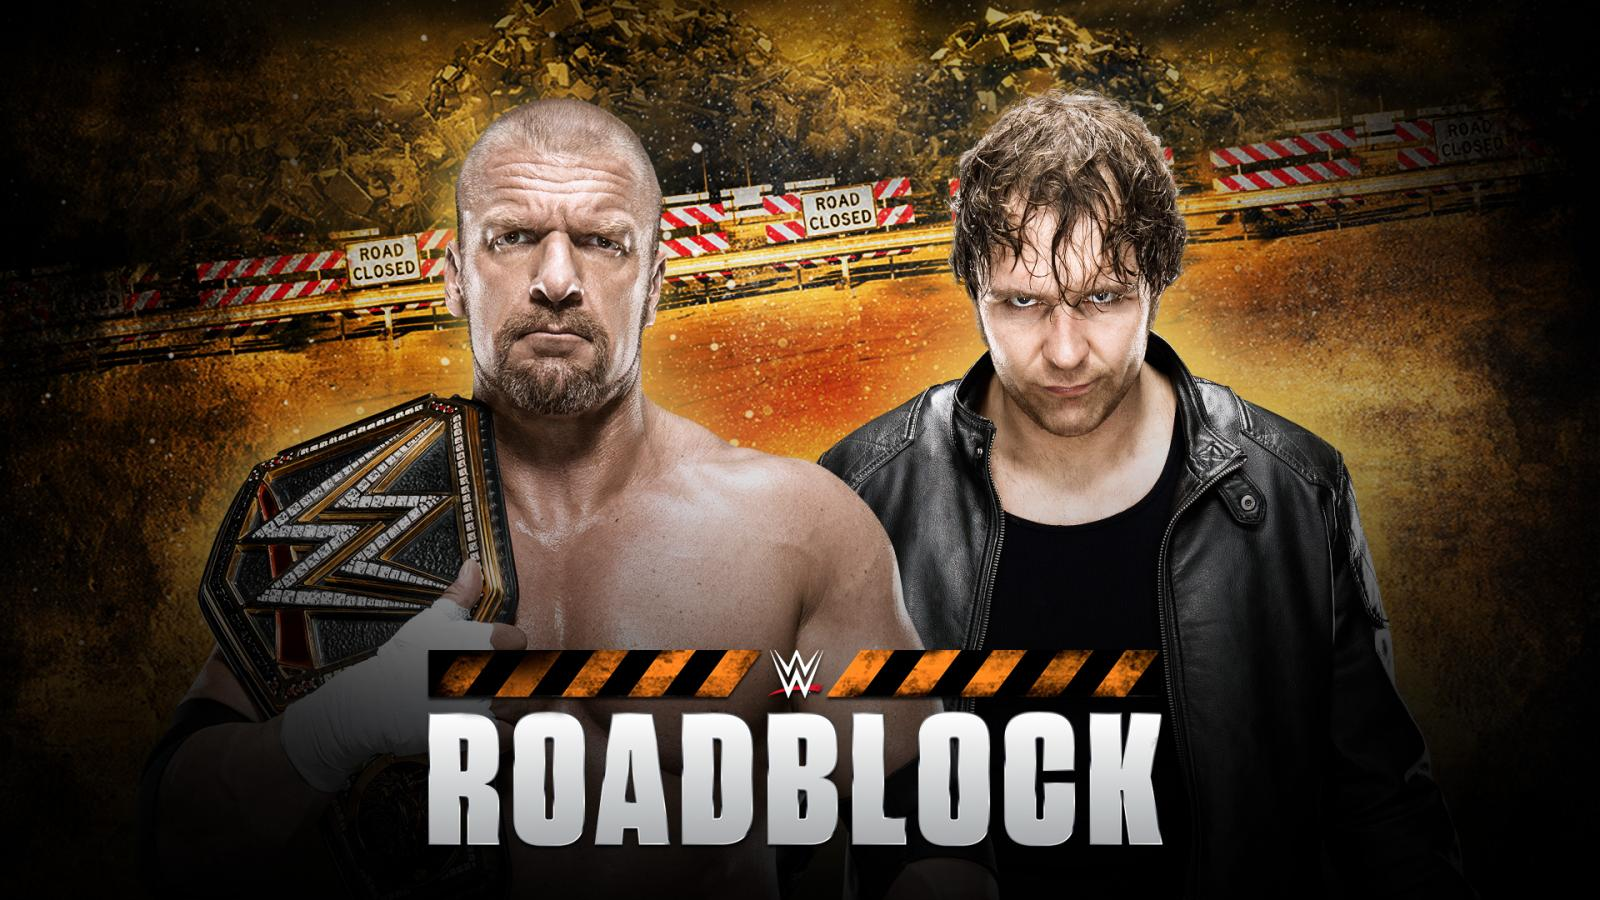 WWE World Heavyweight Champion Triple H battles Dean Ambrose